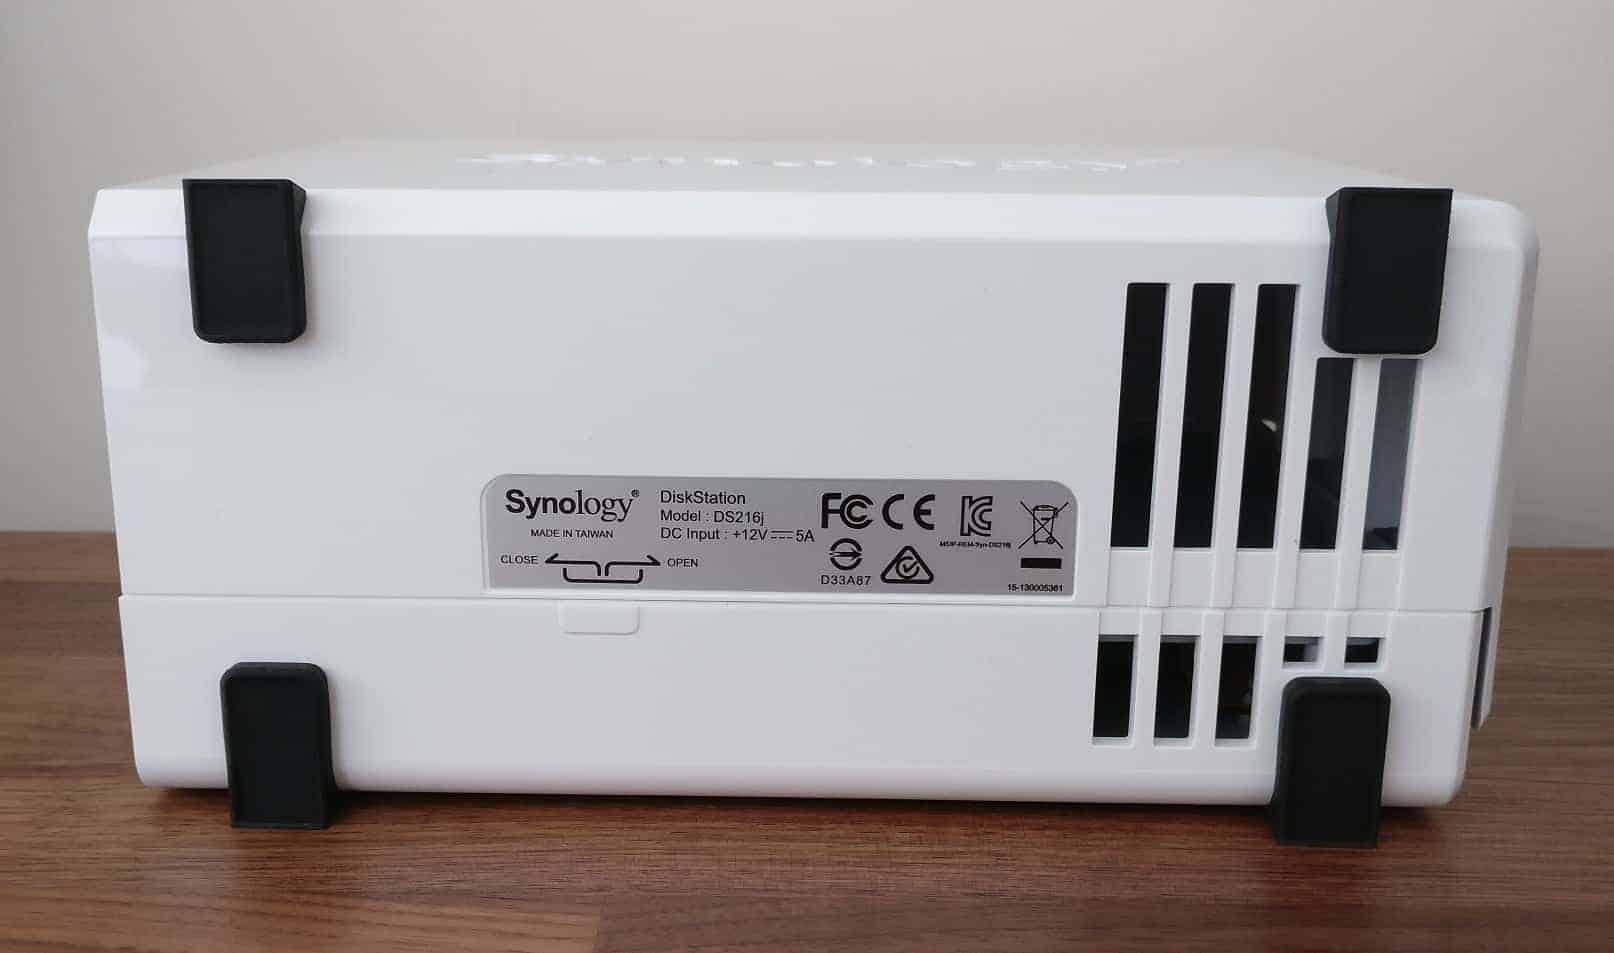 Synology DS216J 2 Bay NAS Review - The Perfect Backup Solution - The